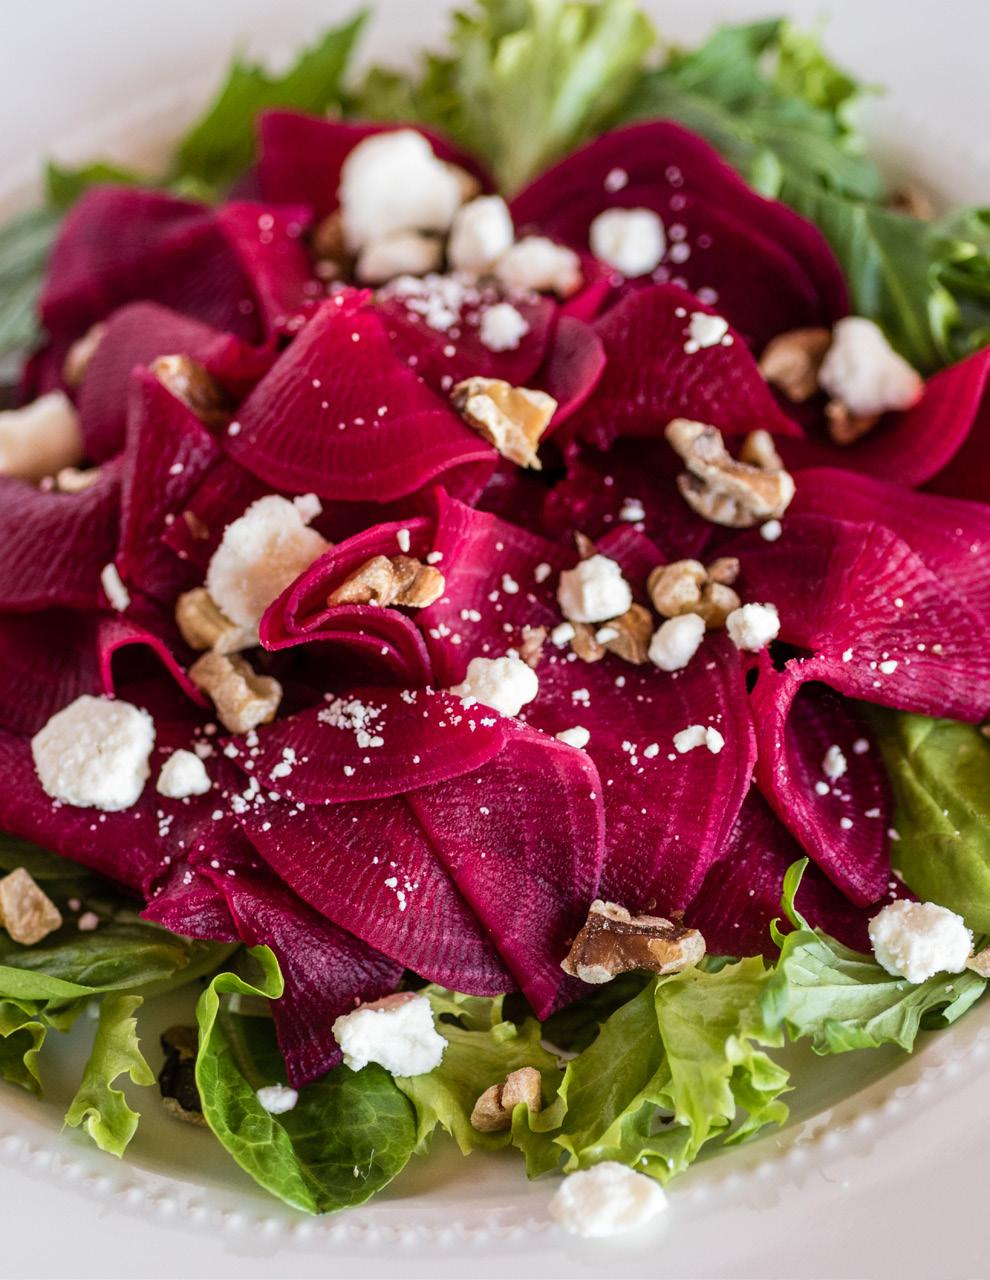 Beets with Orange & Goat Cheese Salad Serves: 8 2 pounds fresh beets (about 6 medium), peeled 3 teaspoons salt, divided 6 tablespoons fresh orange juice 1/2 cup vegetable oil 2 tablespoons rice